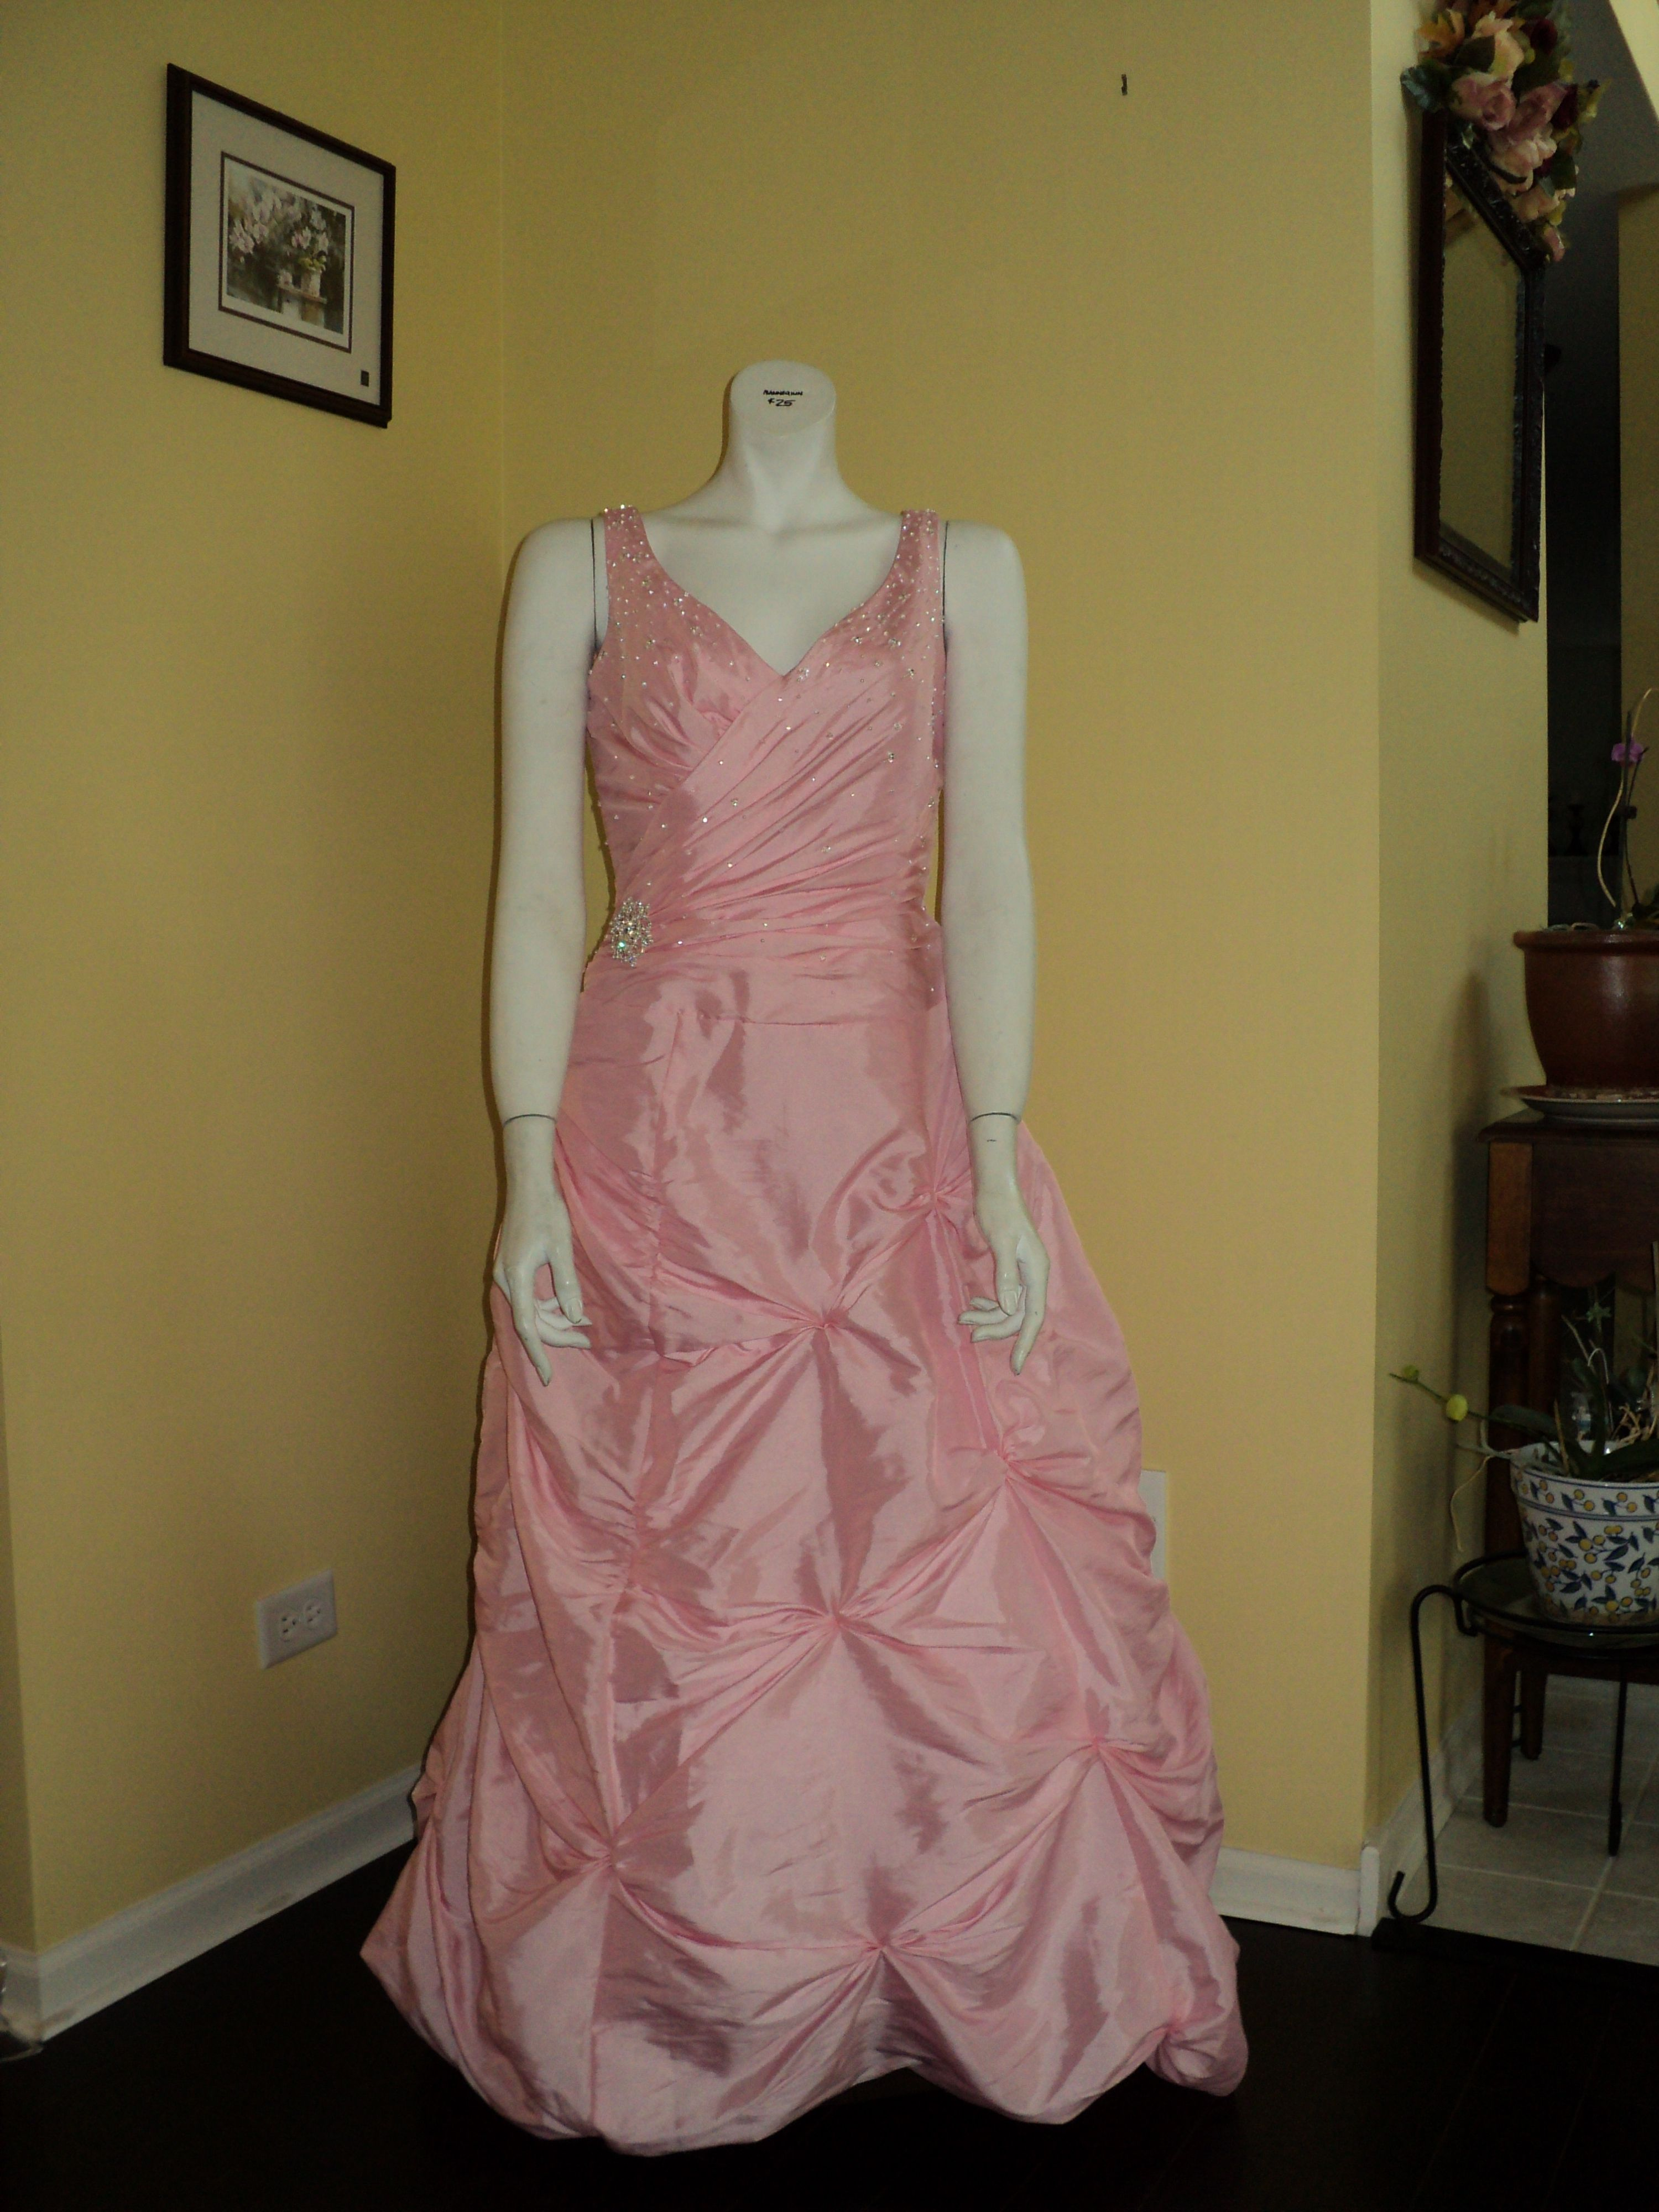 Feel like a princess in this pink taffeta gown. The beading, details, and pickups will give you extra sparkle.